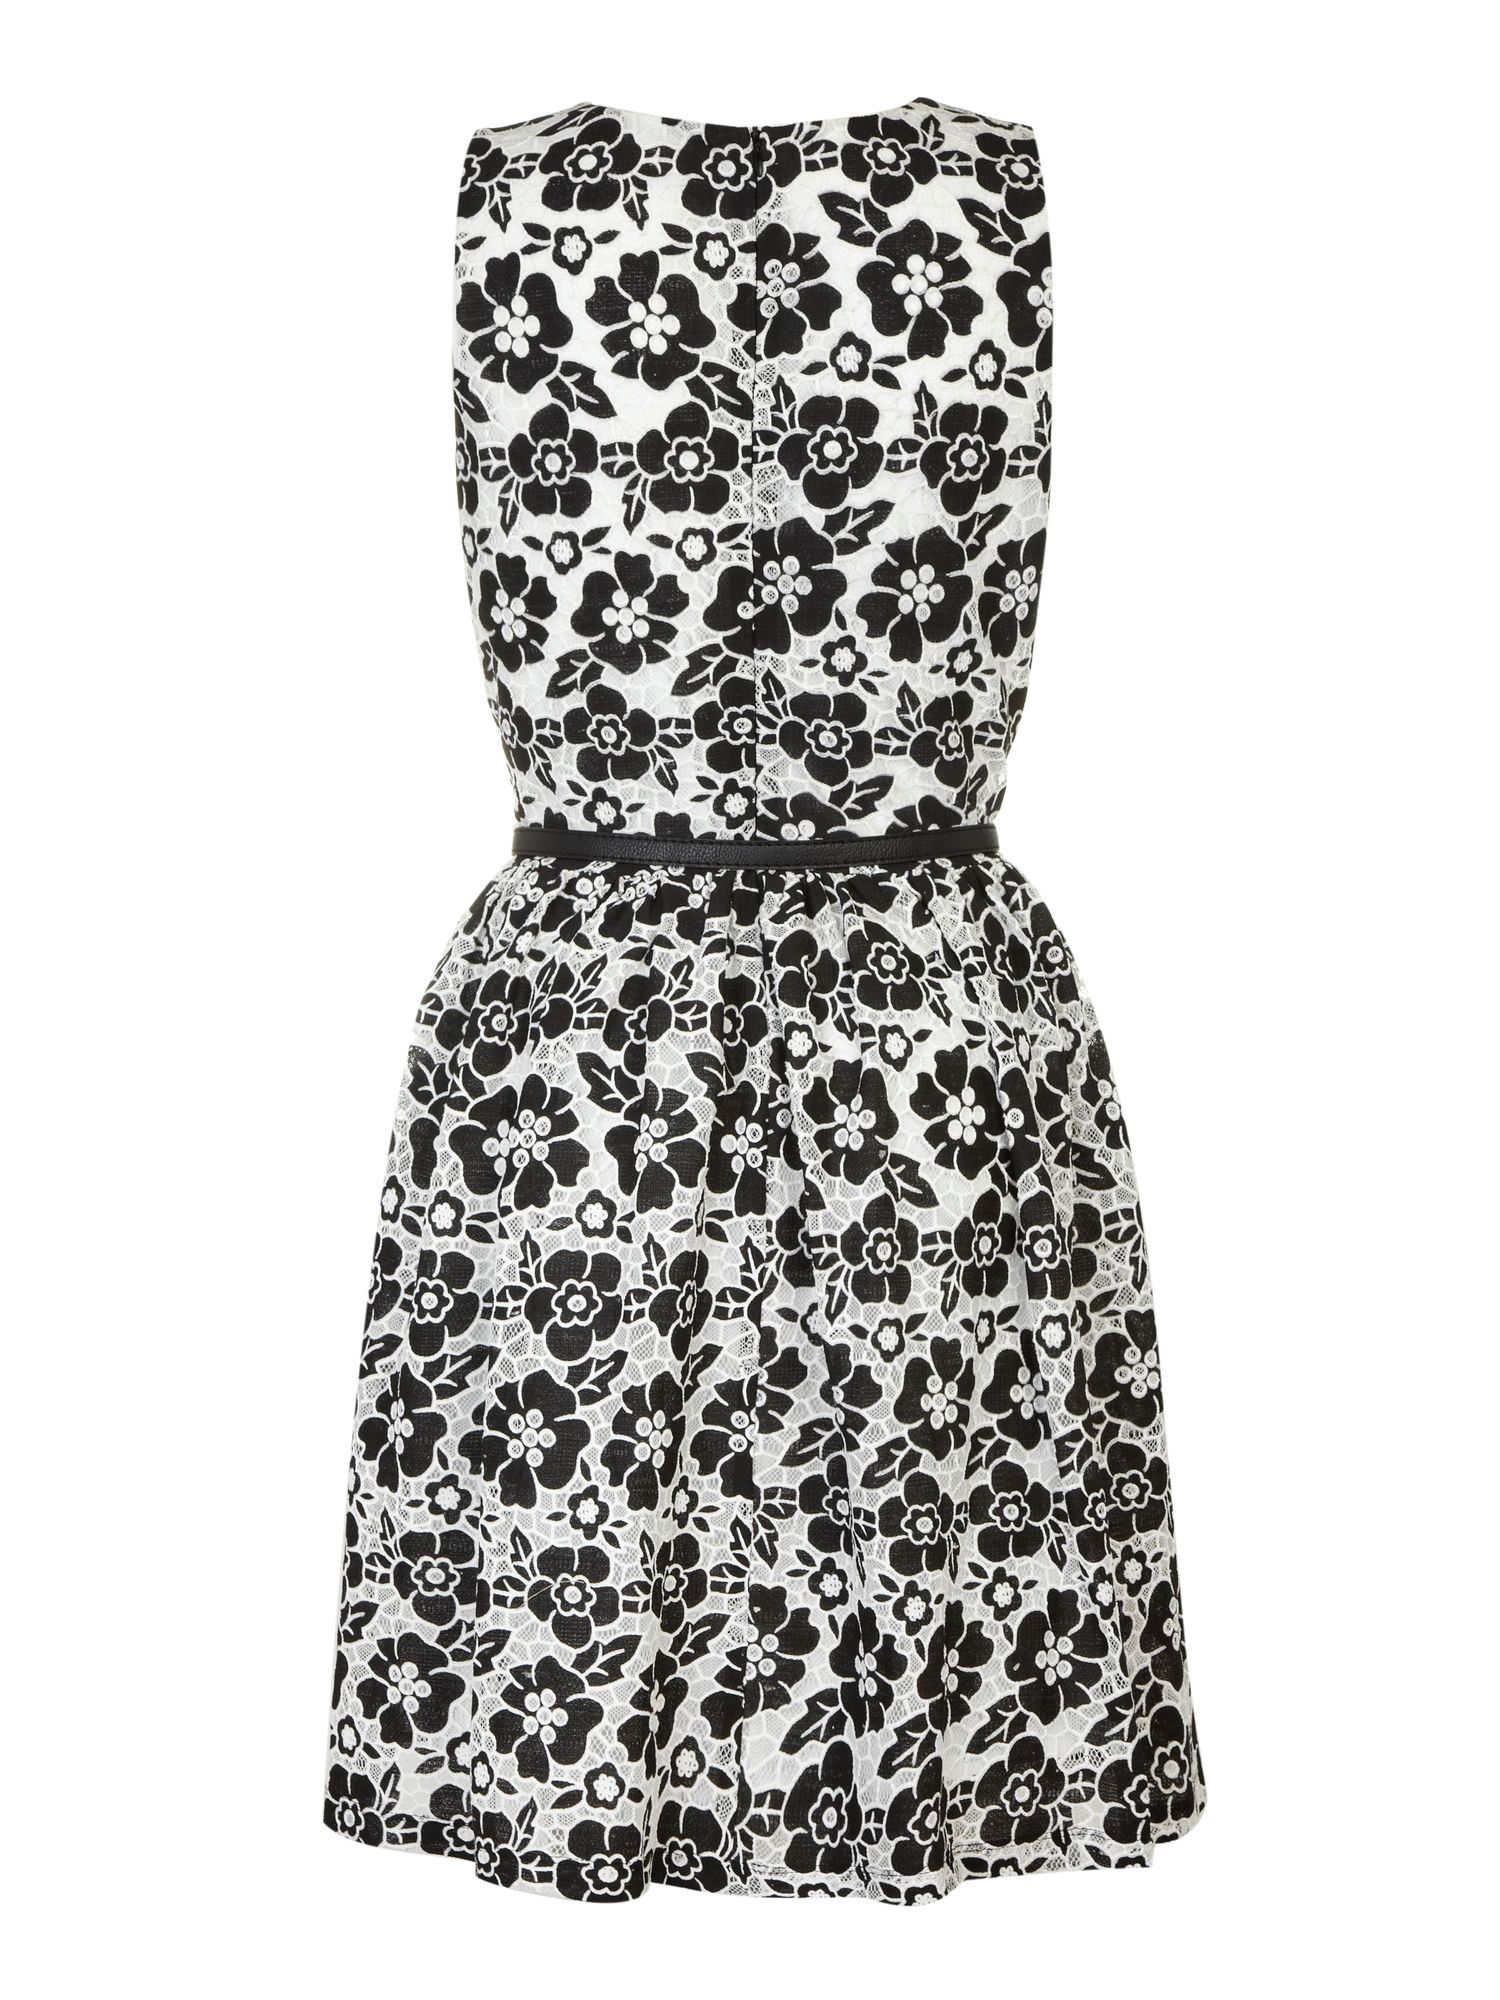 Flower lace fit and flare dress.